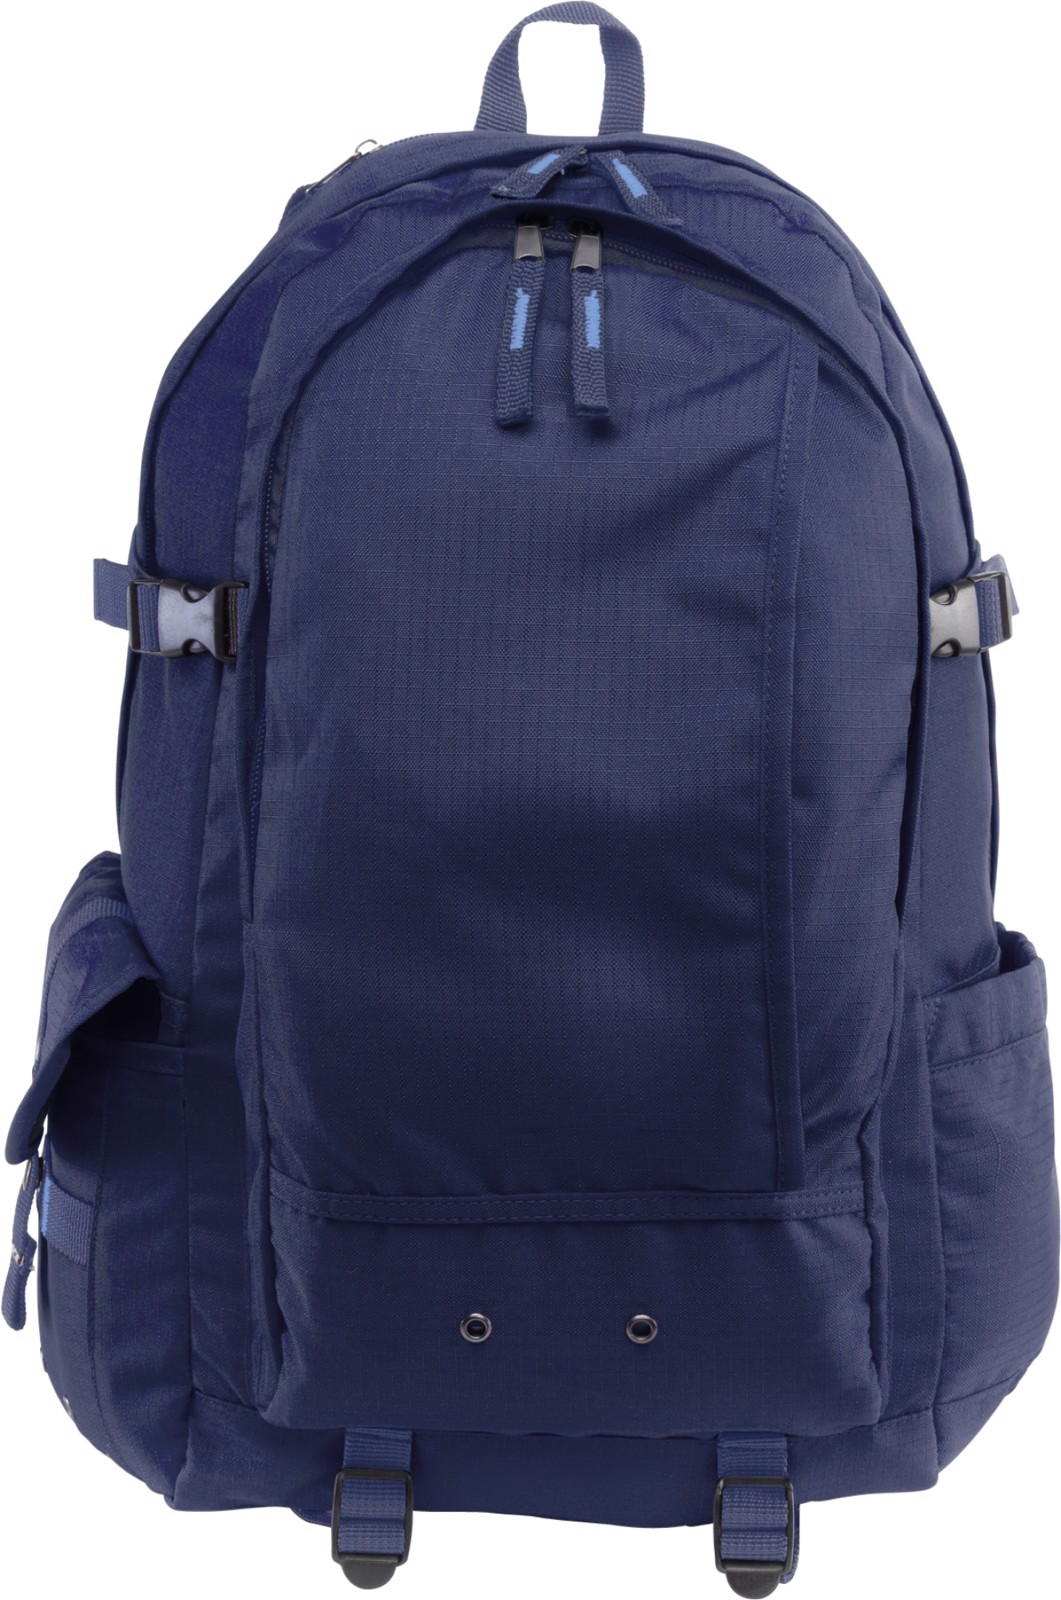 Ripstop (210D) backpack - Blue